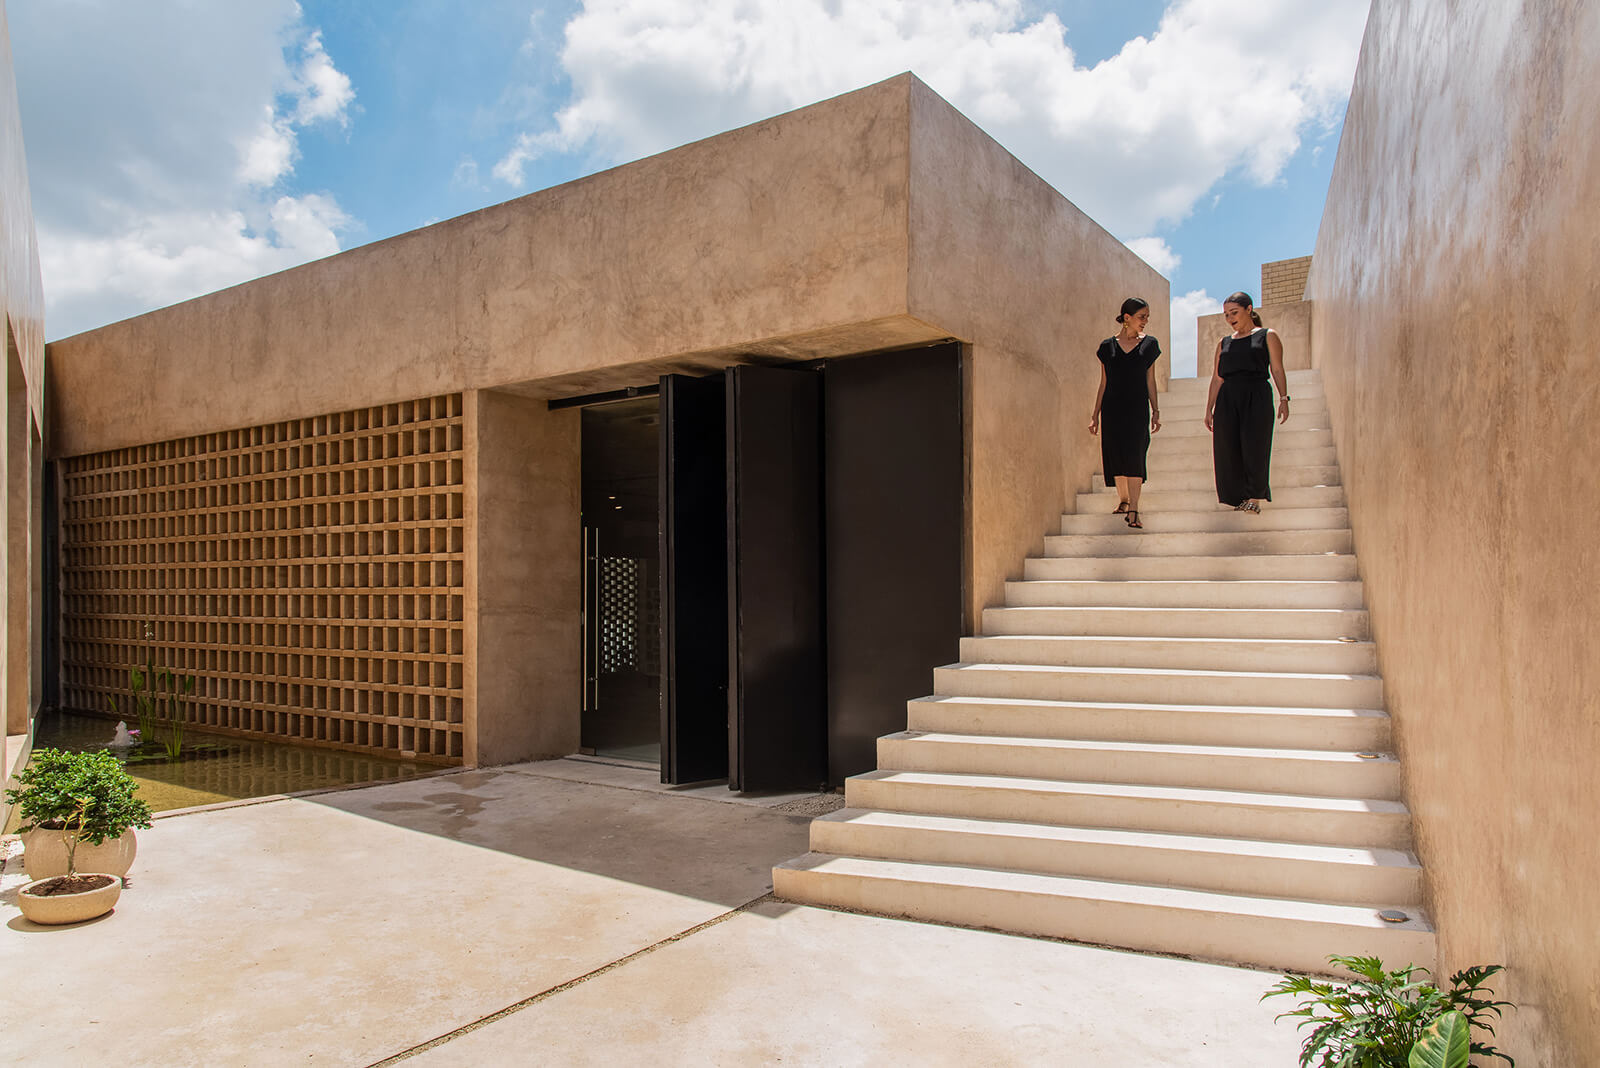 Concrete to render a Contemporary Look